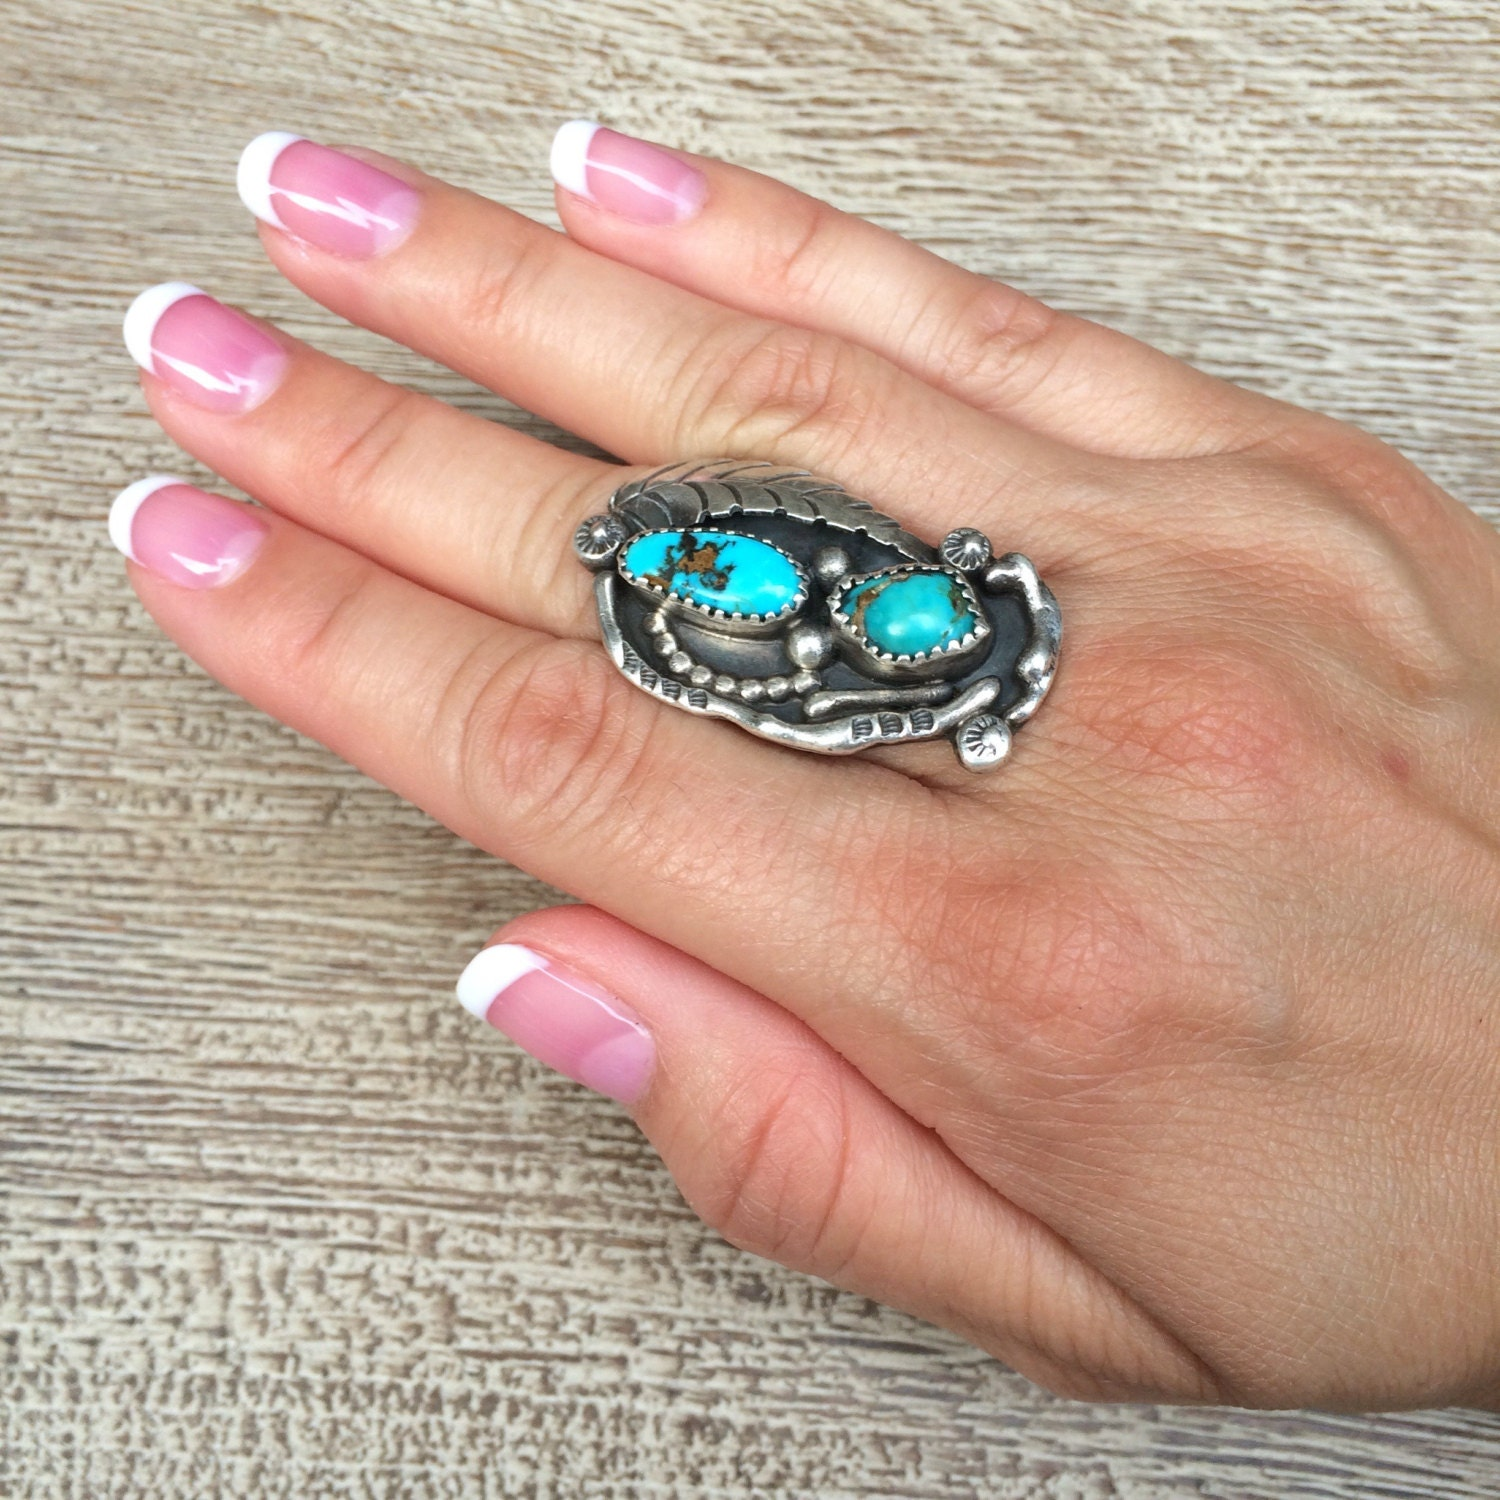 gift native pawn jewellery old her jewelry turquoise indian southwest fullxfull listing american lake navajo vintage for ring il carico size